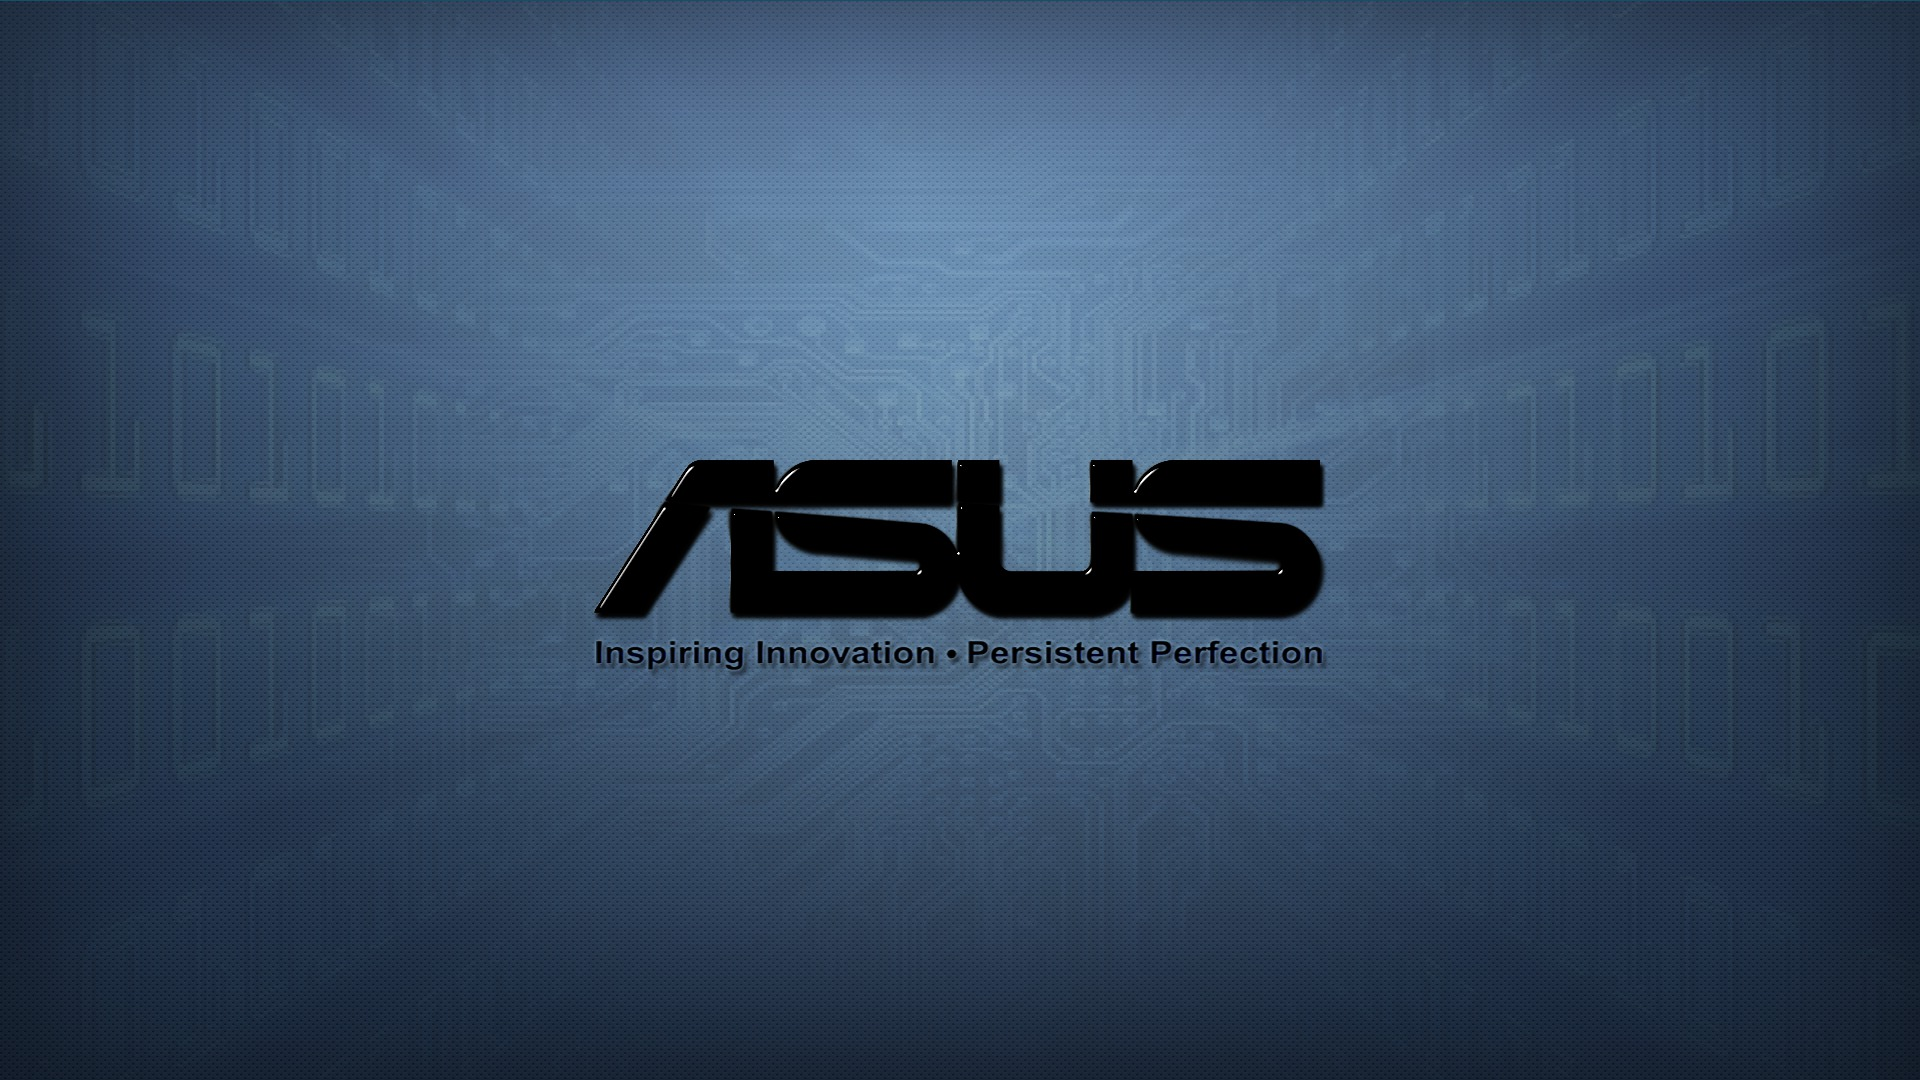 Images for Gt Asus Wallpaper Green 1920x1080px